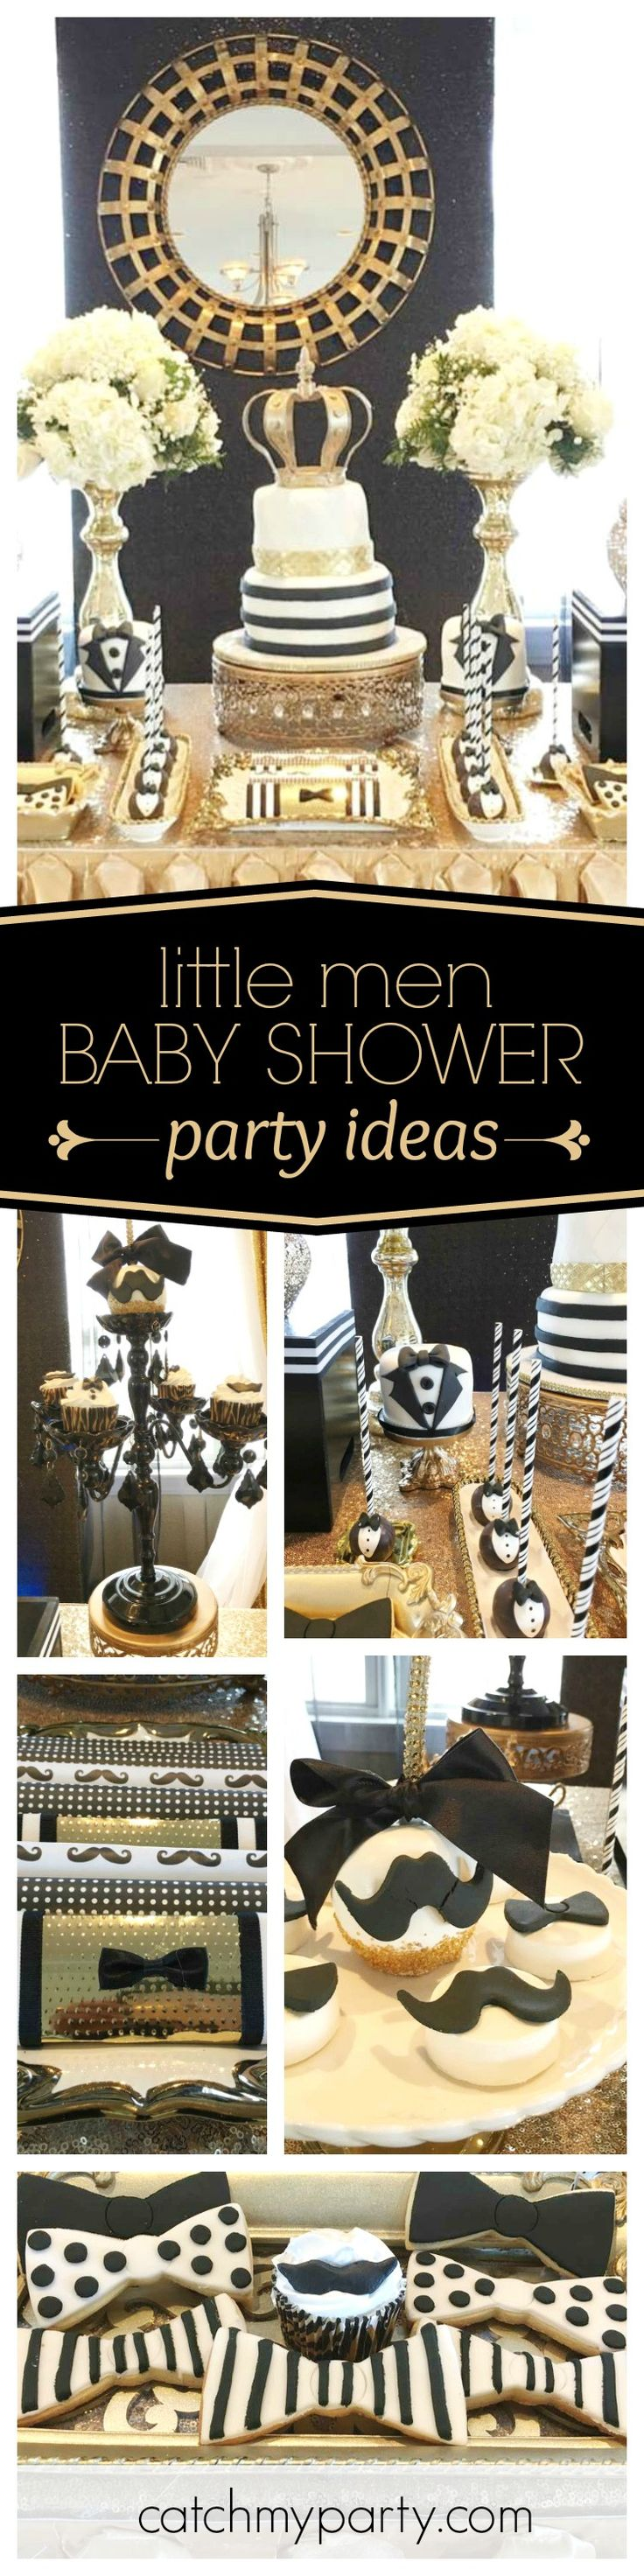 42 best baby shower images on Pinterest